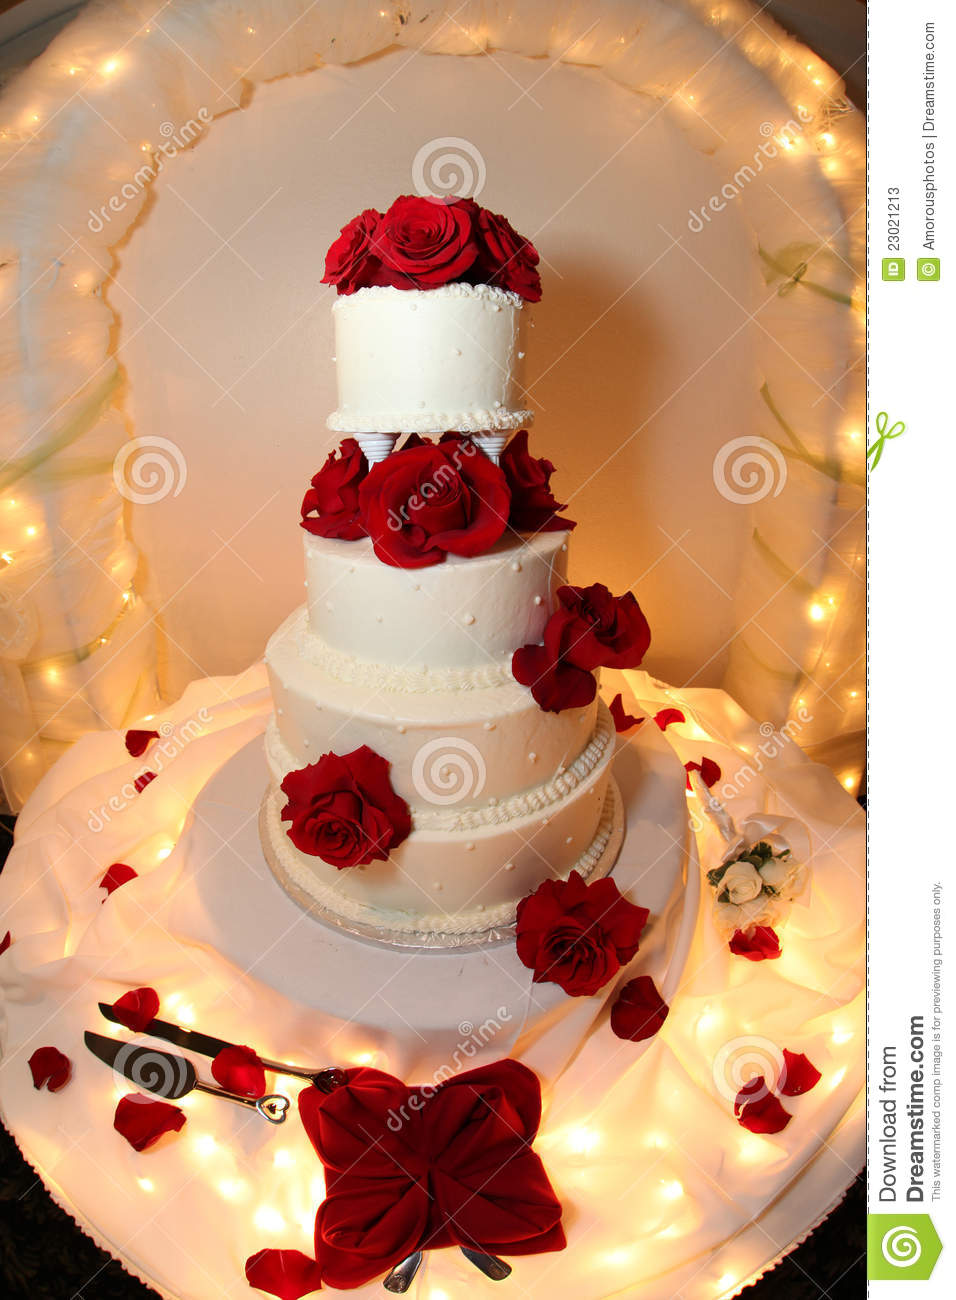 Wedding Cake With Red Roses Stock Image Image Of Flower